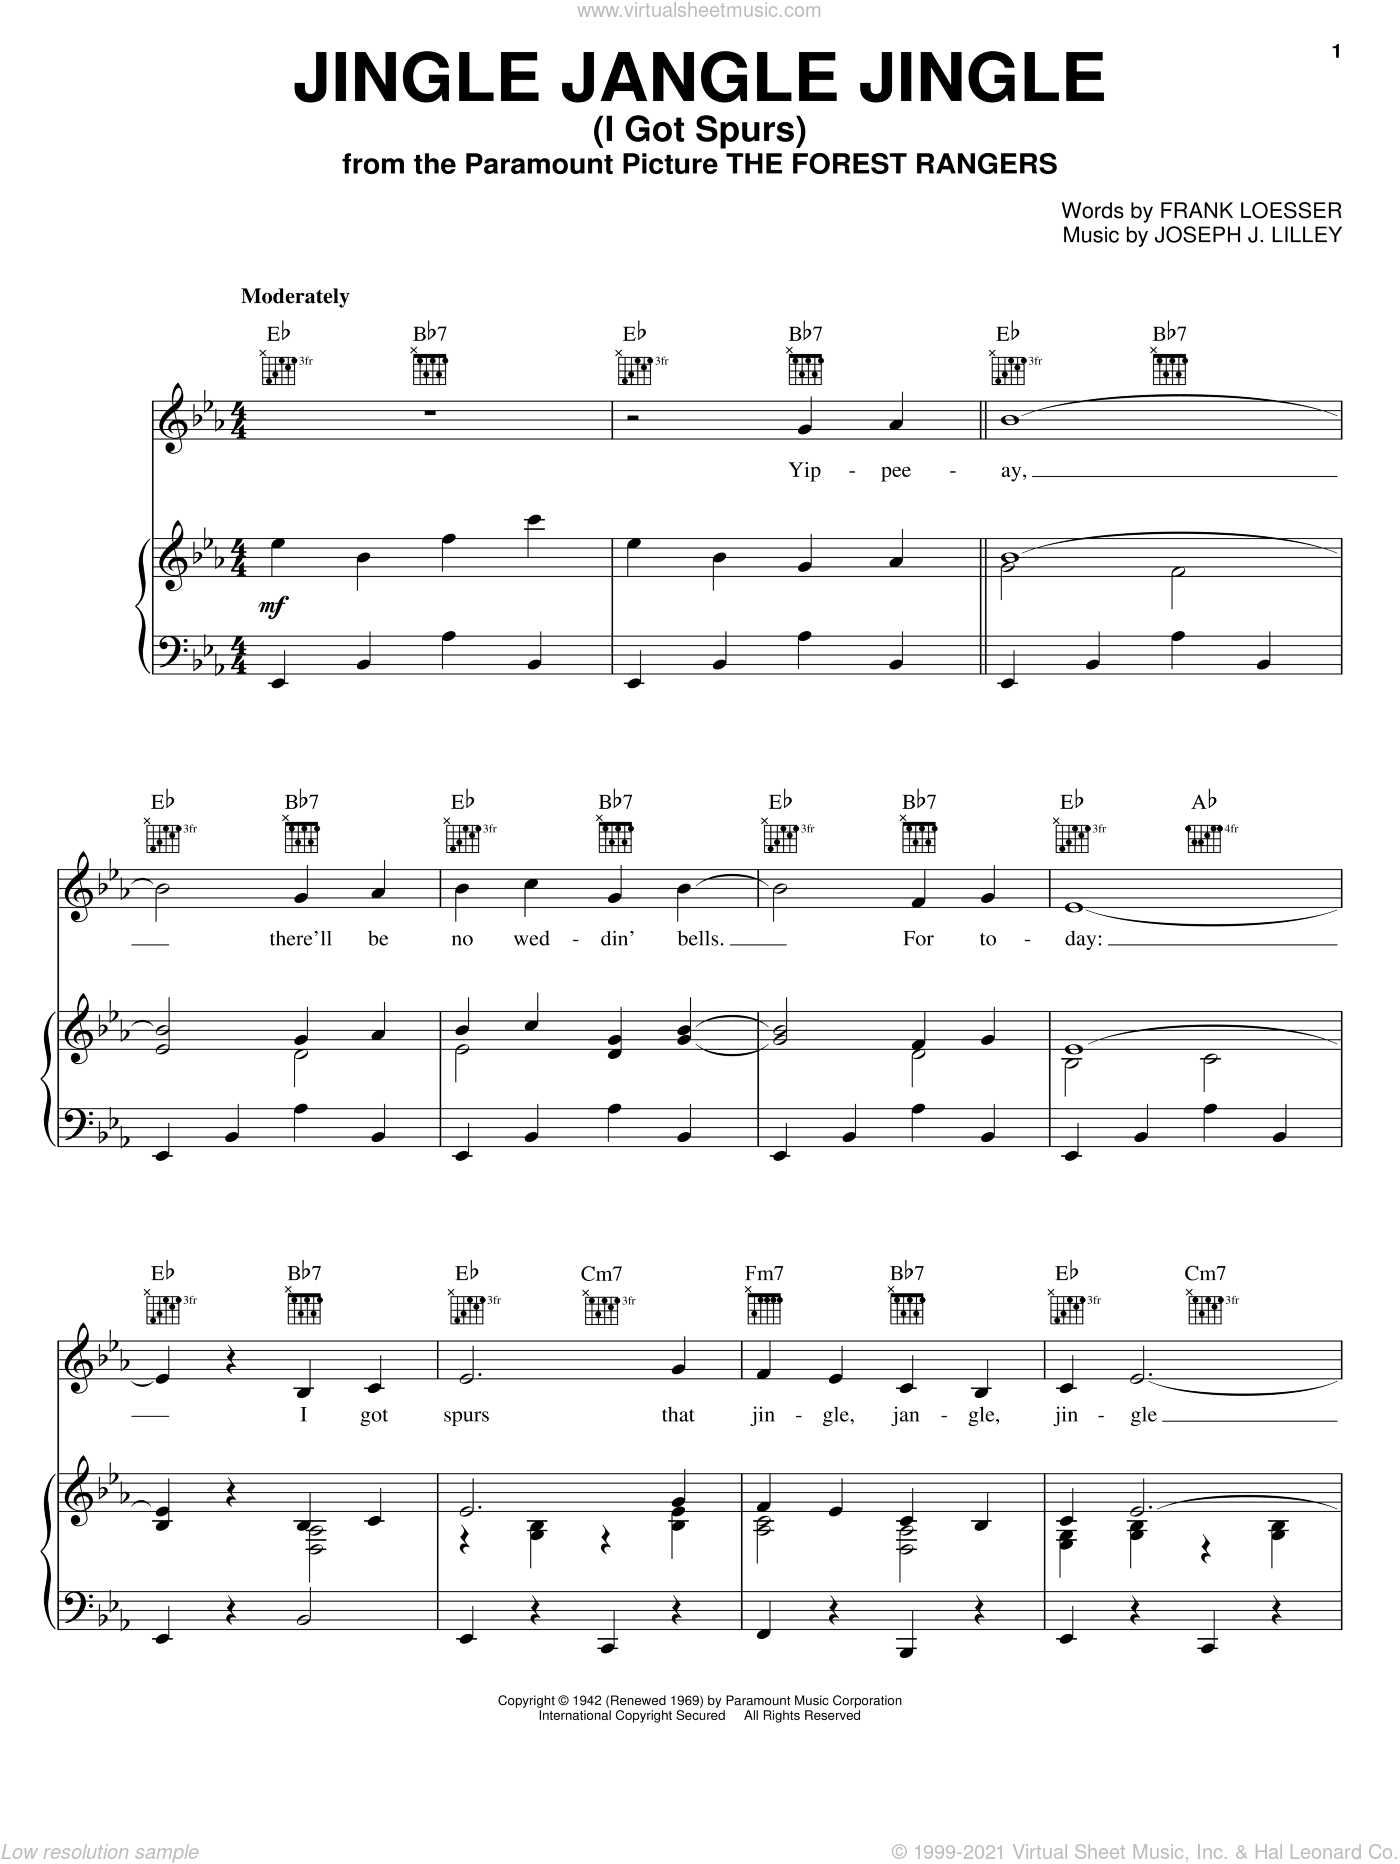 Jingle Jangle Jingle (I Got Spurs) sheet music for voice, piano or guitar by Frank Loesser and Joseph J. Lilley, intermediate skill level